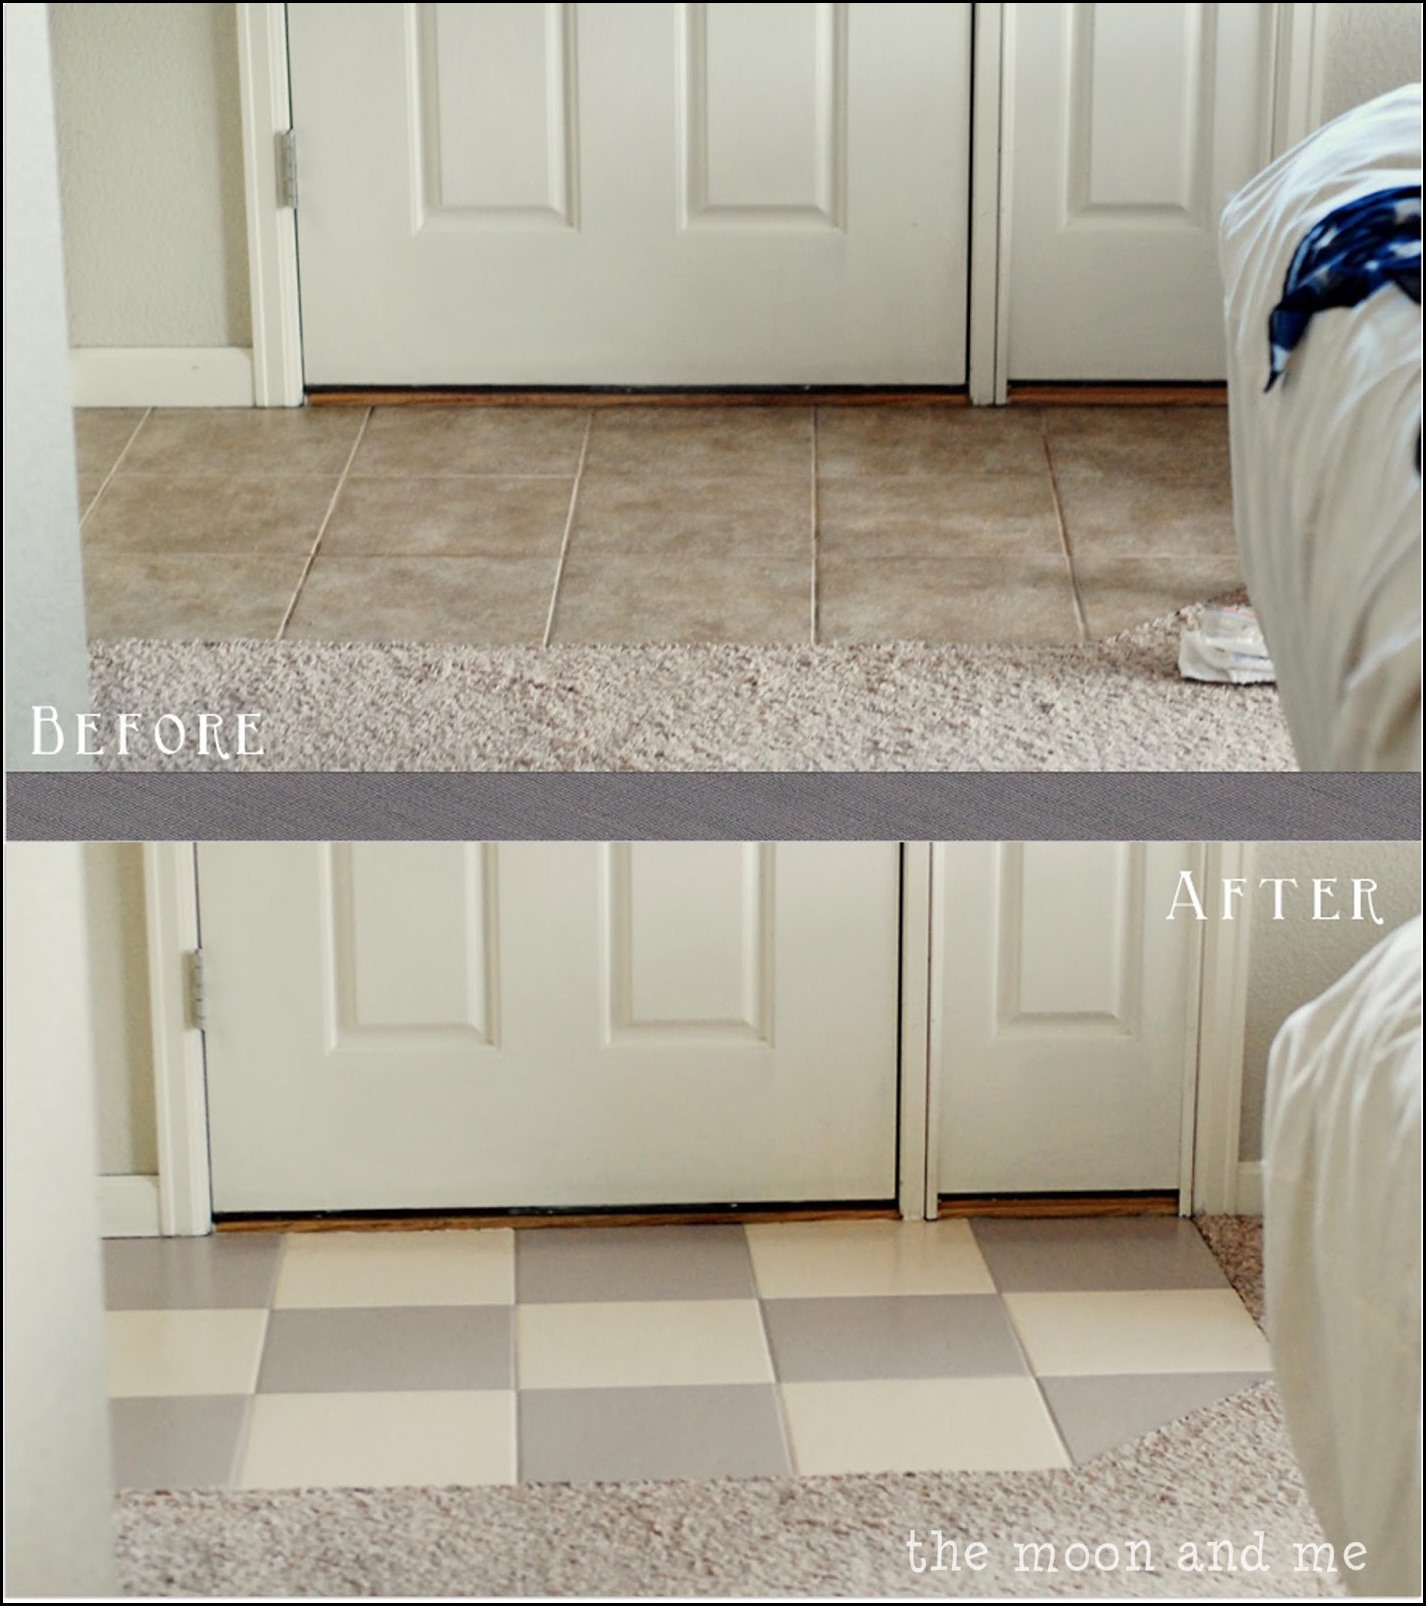 Can You Paint Over Bathroom Wall Tiles: Can You Paint Or Stain Ceramic Tile